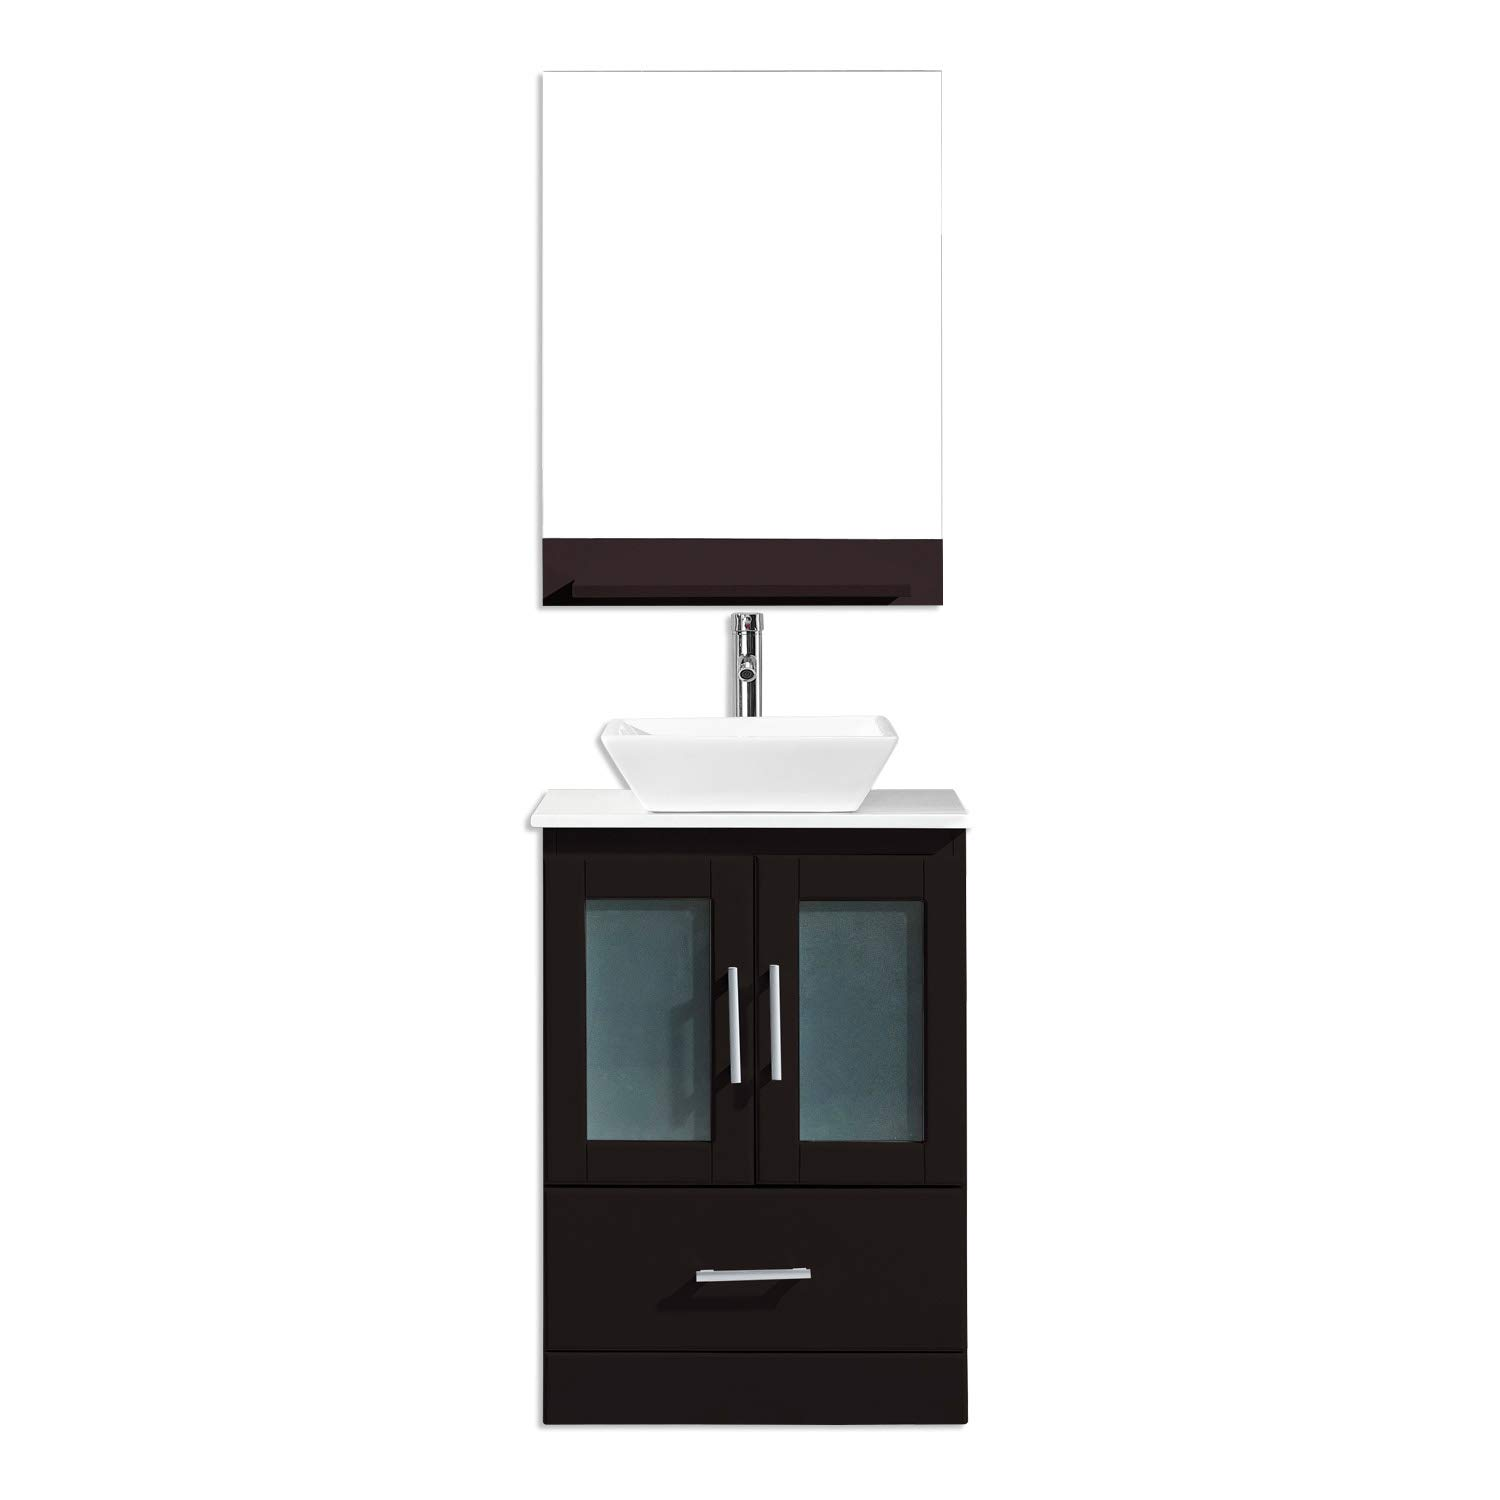 """Virtu USA MS-6724-C-ES-001 Zola 24"""" Single Bathroom Vanity White Ceramic Top and Square Sink with Brushed Nickel Faucet and Mirror, 24 inches, Dark Espresso"""